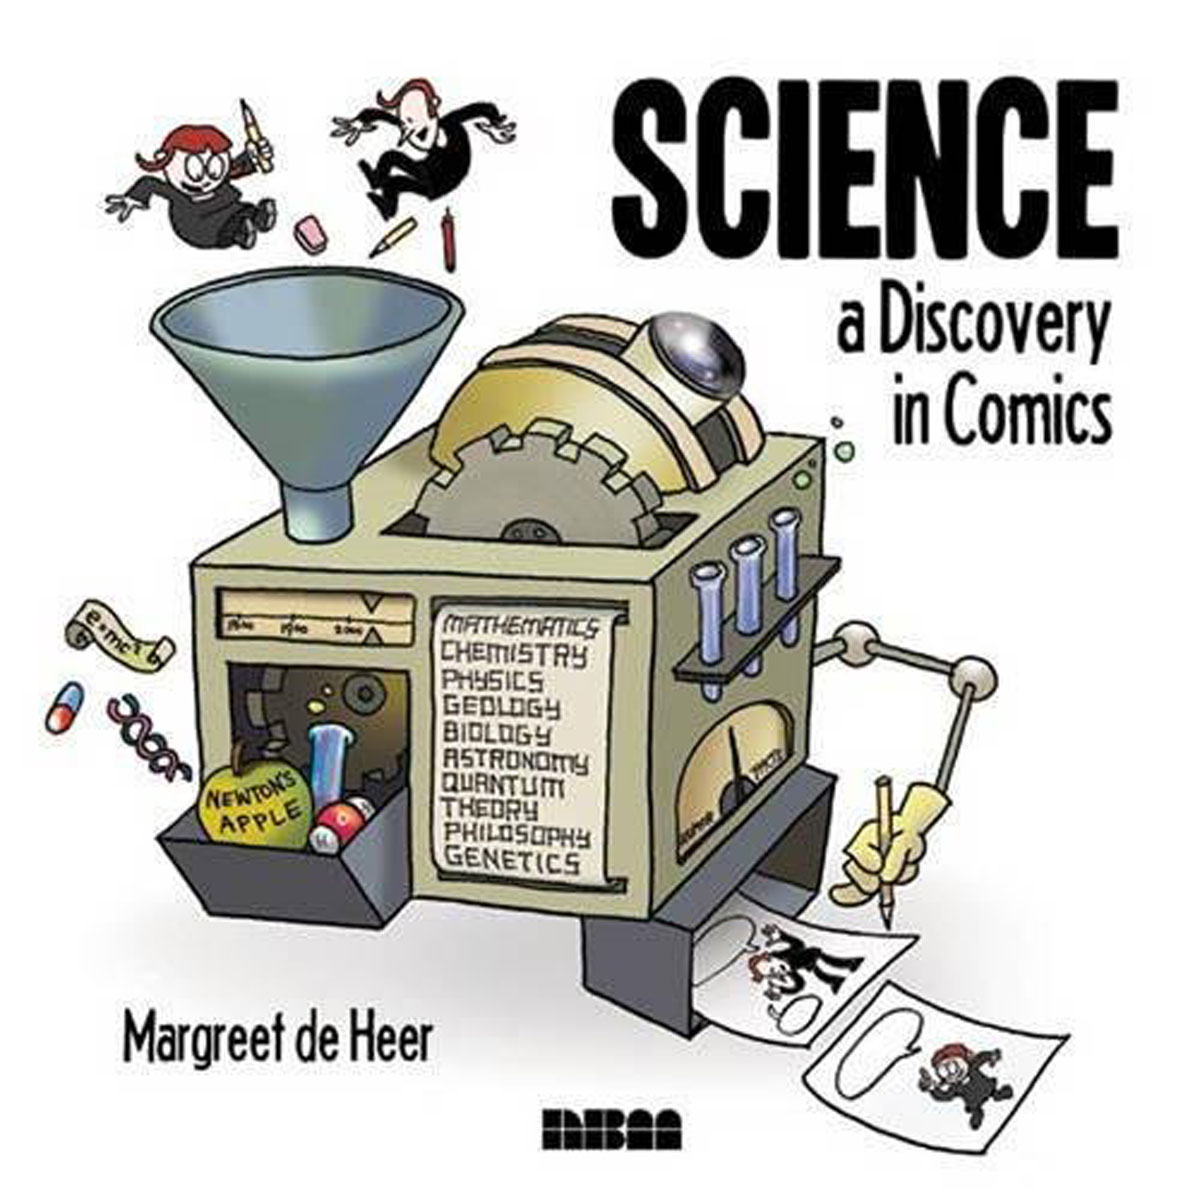 Science - A Discovery in Comics voluntary associations in tsarist russia – science patriotism and civil society